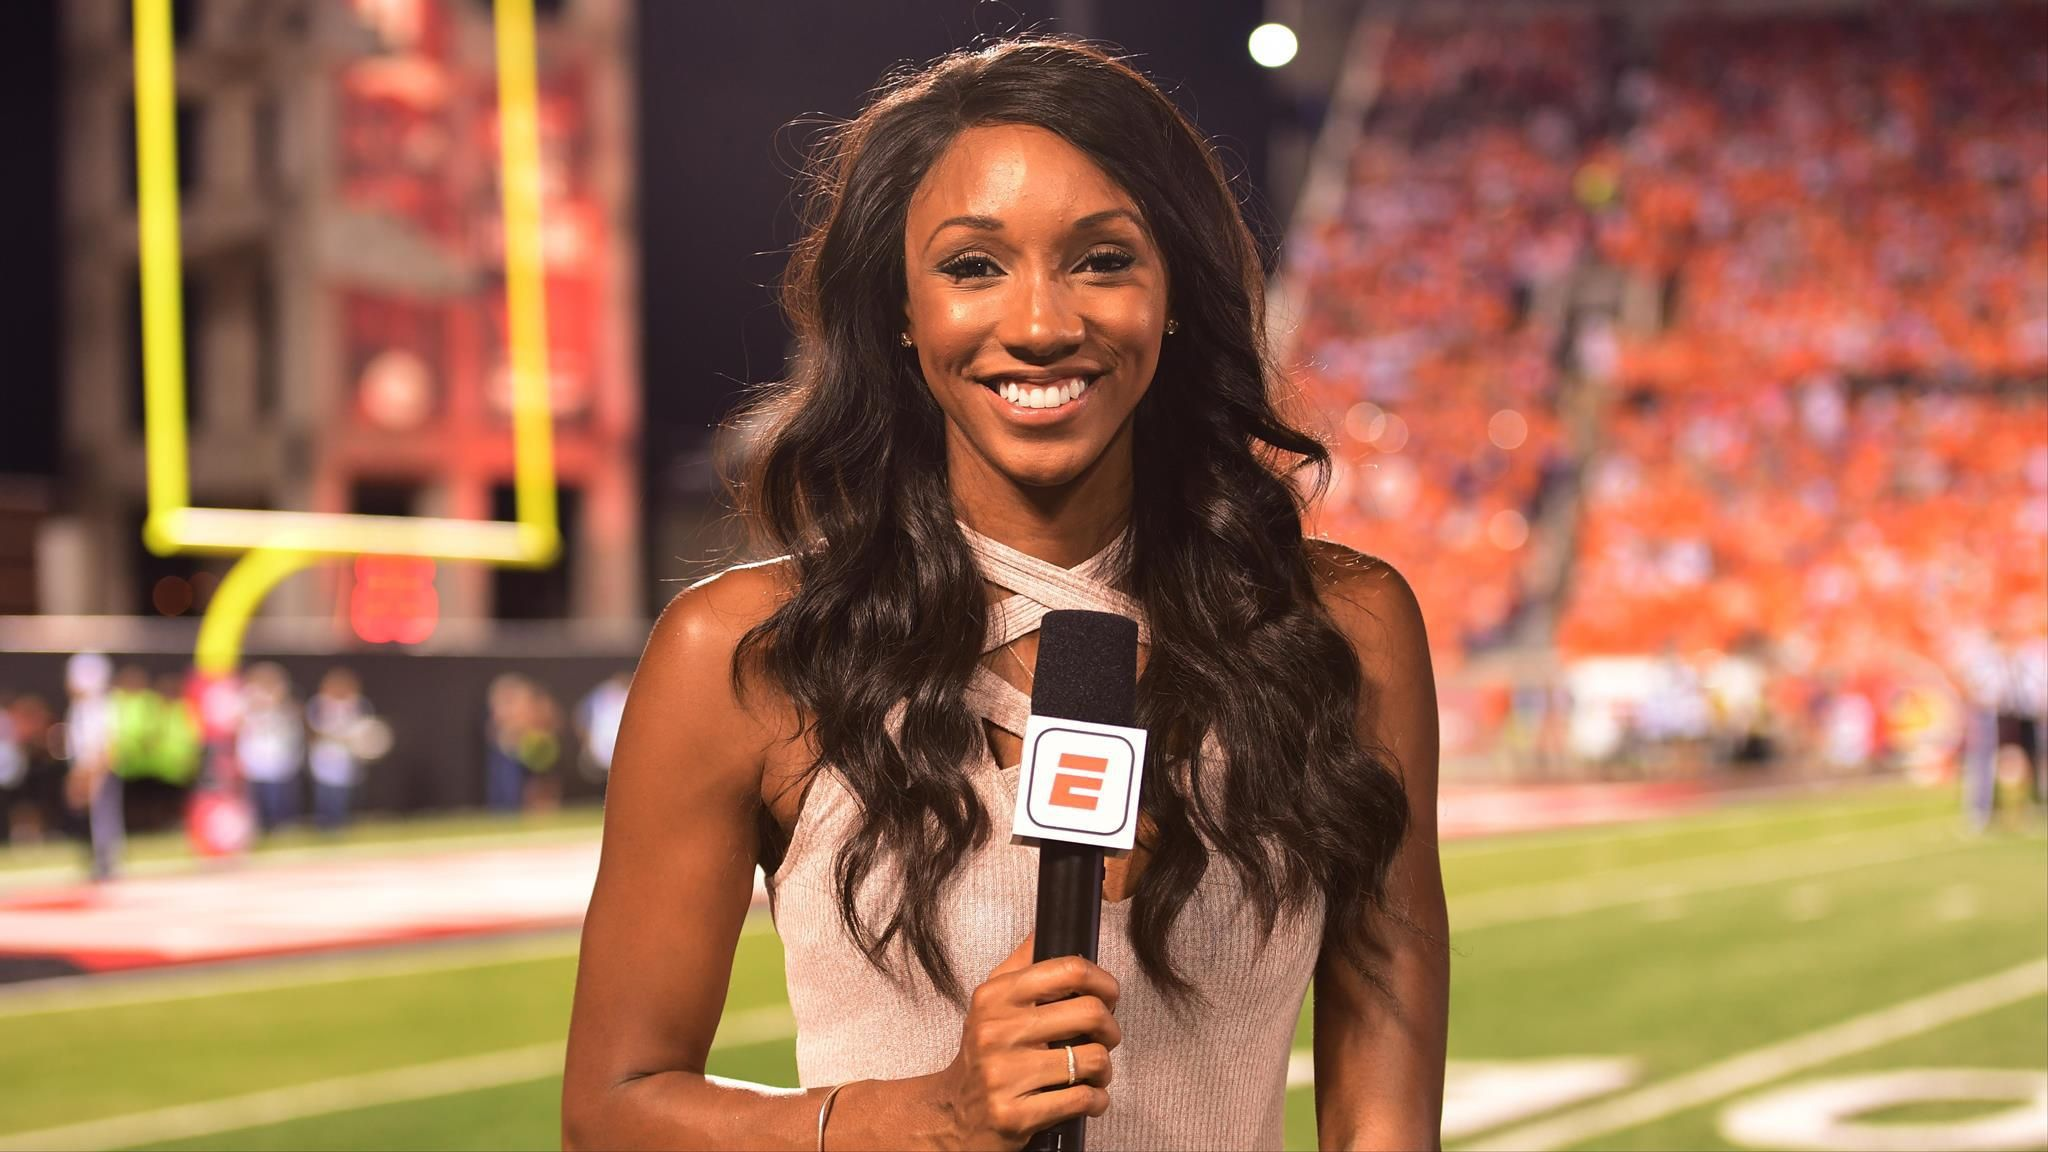 Espn S Newest College Football Host Changes The Game Seeing Butterflies Maria Taylor Maria Taylor Espn College Football